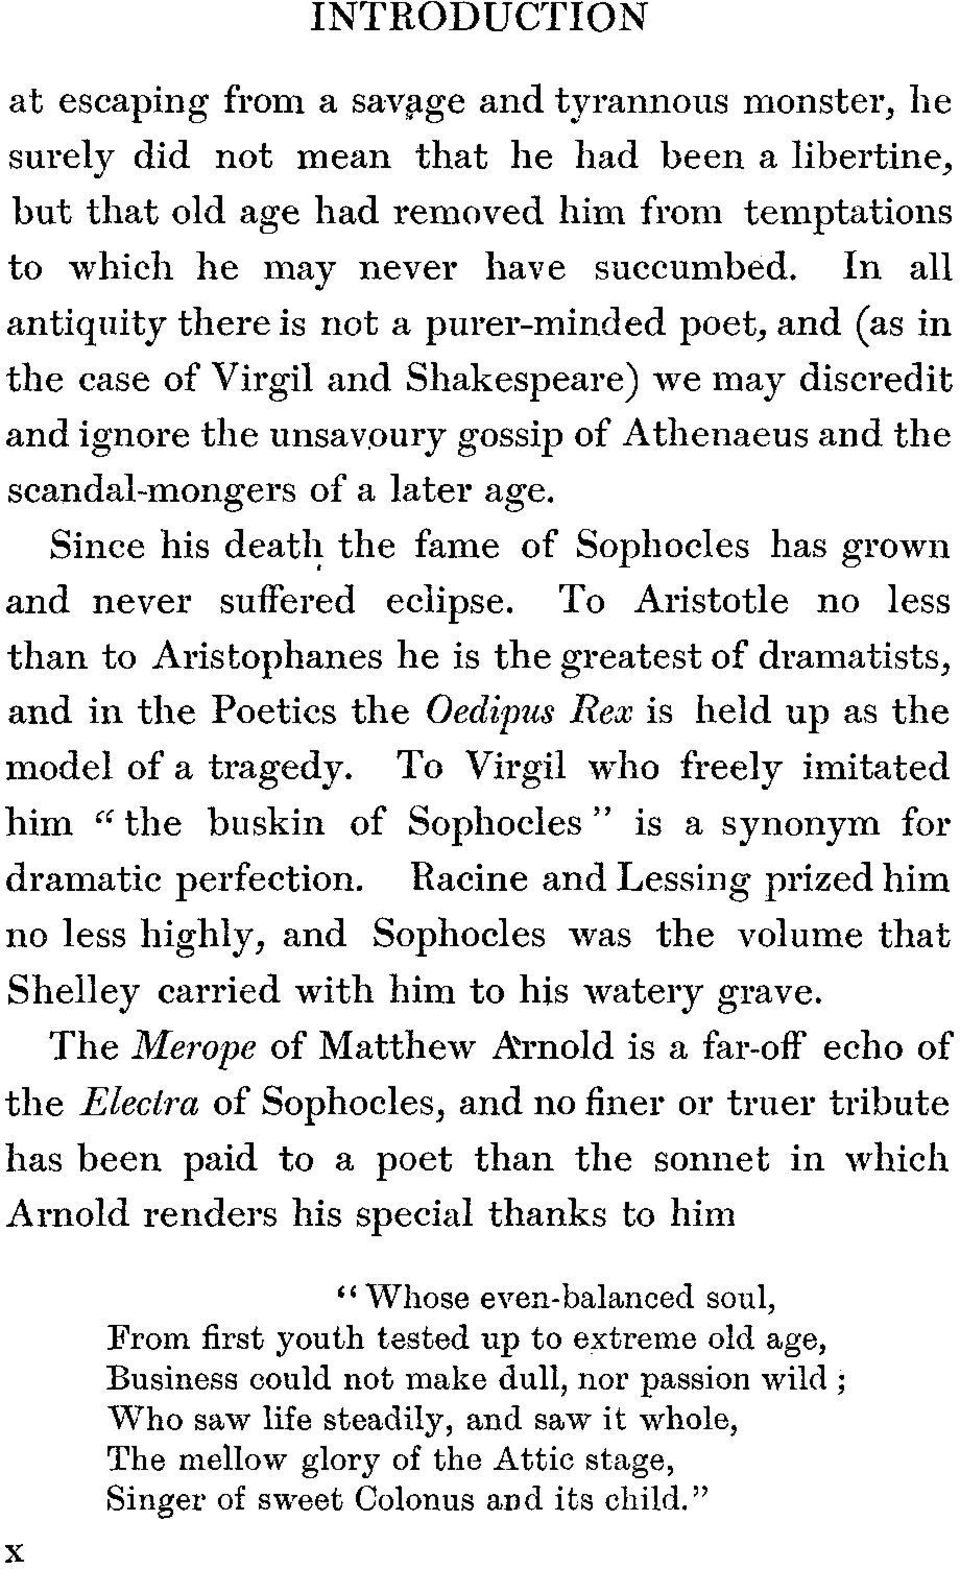 In all antiquity there is not a purer-minded poet, and (as in the case of Virgil and Shakespeare) we may discredit and ignore the unsavoury gossip of Athenaeus and the scandal-mongers of a later age.